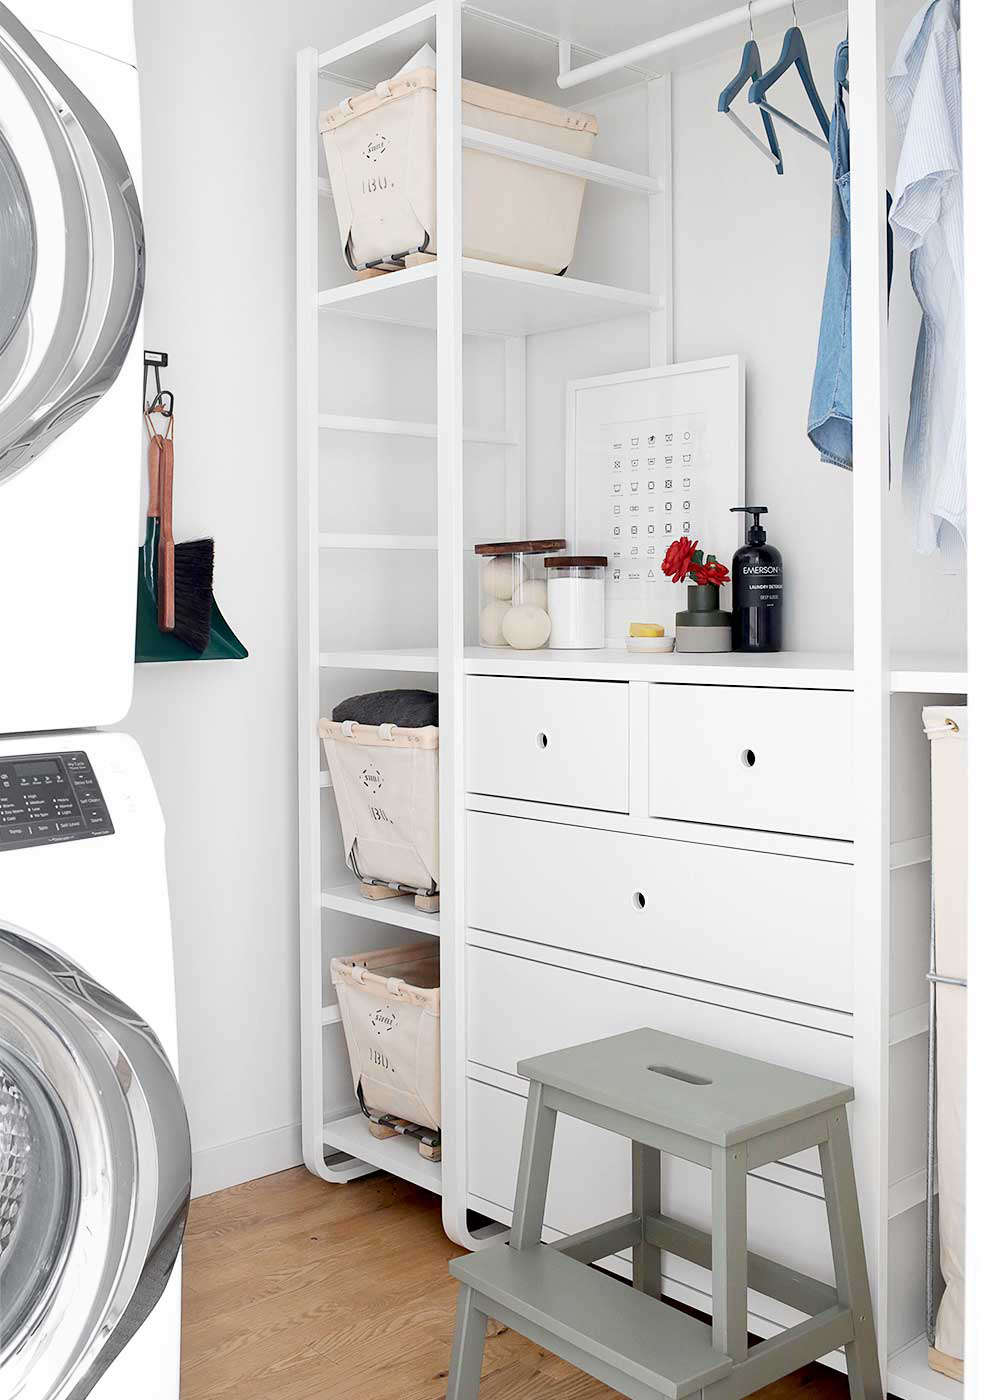 And, a laundry room makeover complete with DIY elements and Ikea storage (a few of our favorite things). See how it came together in Steal This Look: The Faux Martha's DIY Laundry Room Makeover, Courtesy of Ikea. Photograph courtesy of the Faux Martha.